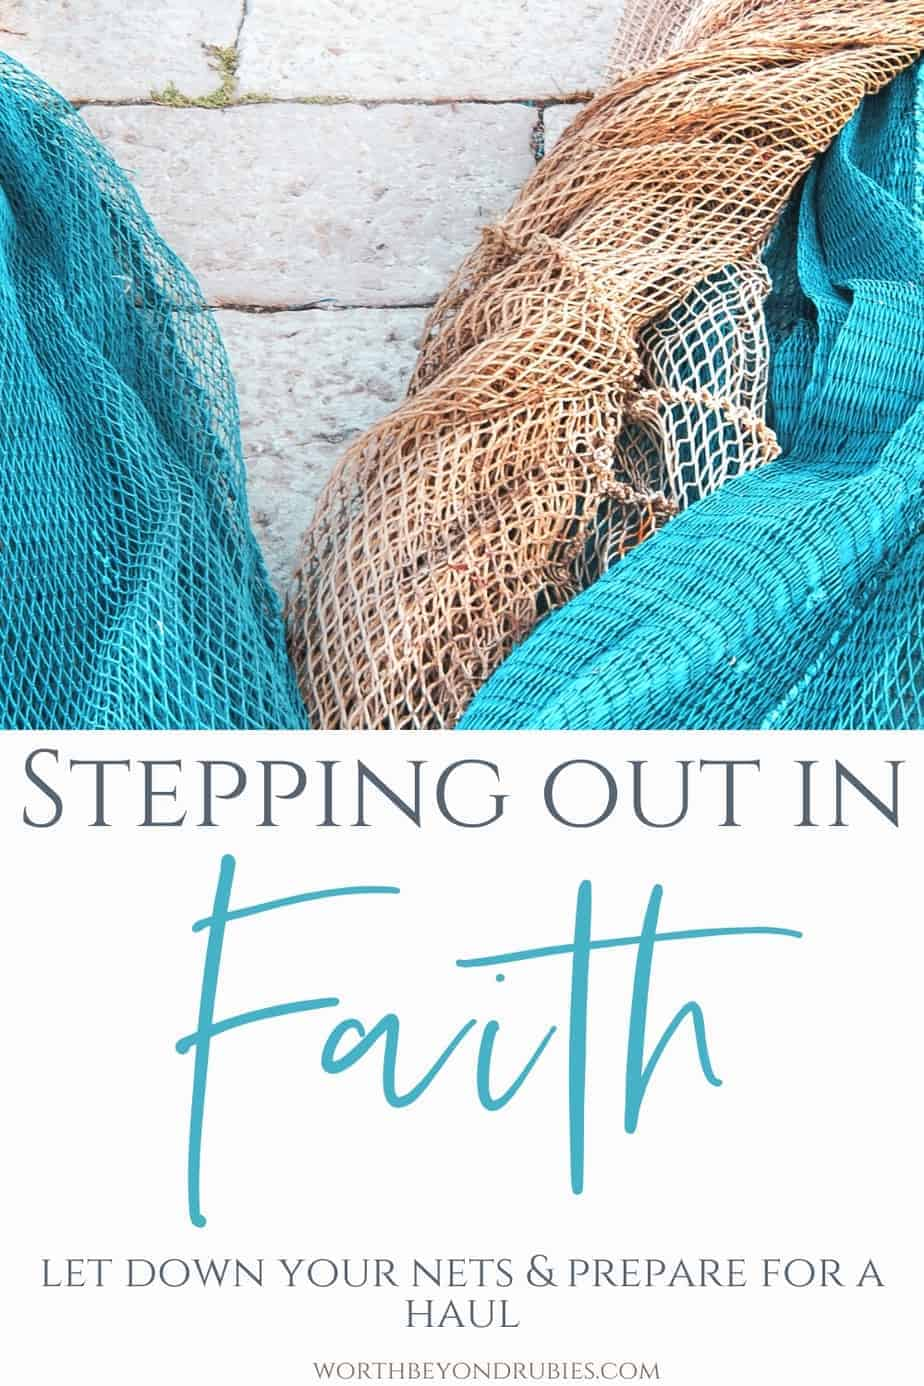 Colorful fishing nets and text that says Stepping Out in Faith - Let Down Your Nets and Prepare for a Haul